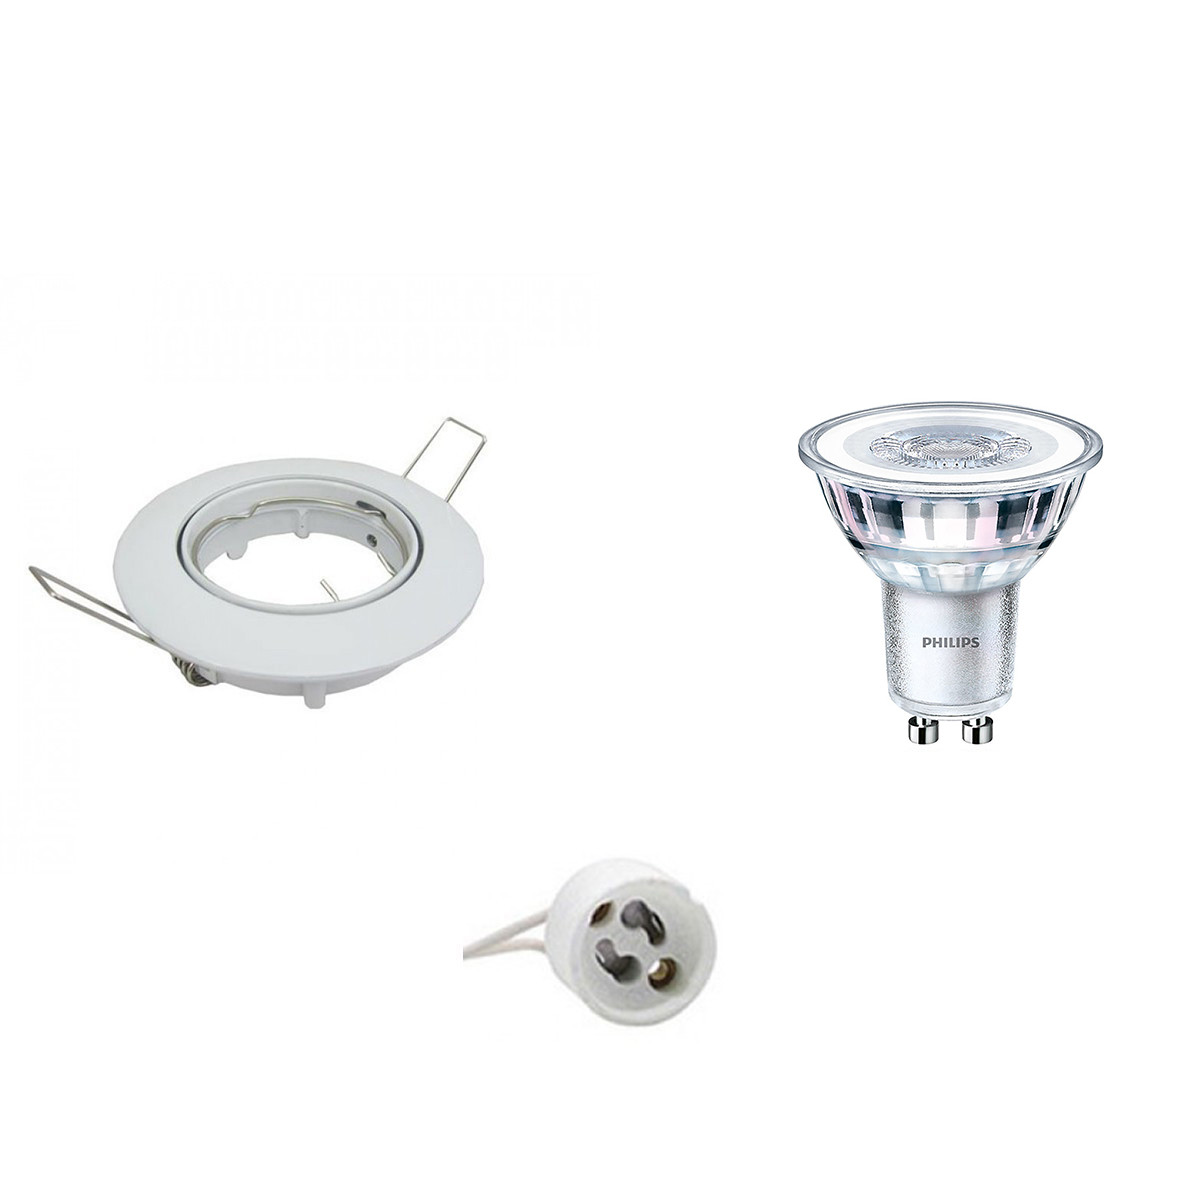 PHILIPS - LED Spot Set - CorePro 827 36D - GU10 Fitting - Inbouw Rond - Glans Wit - 3.5W - Warm Wit